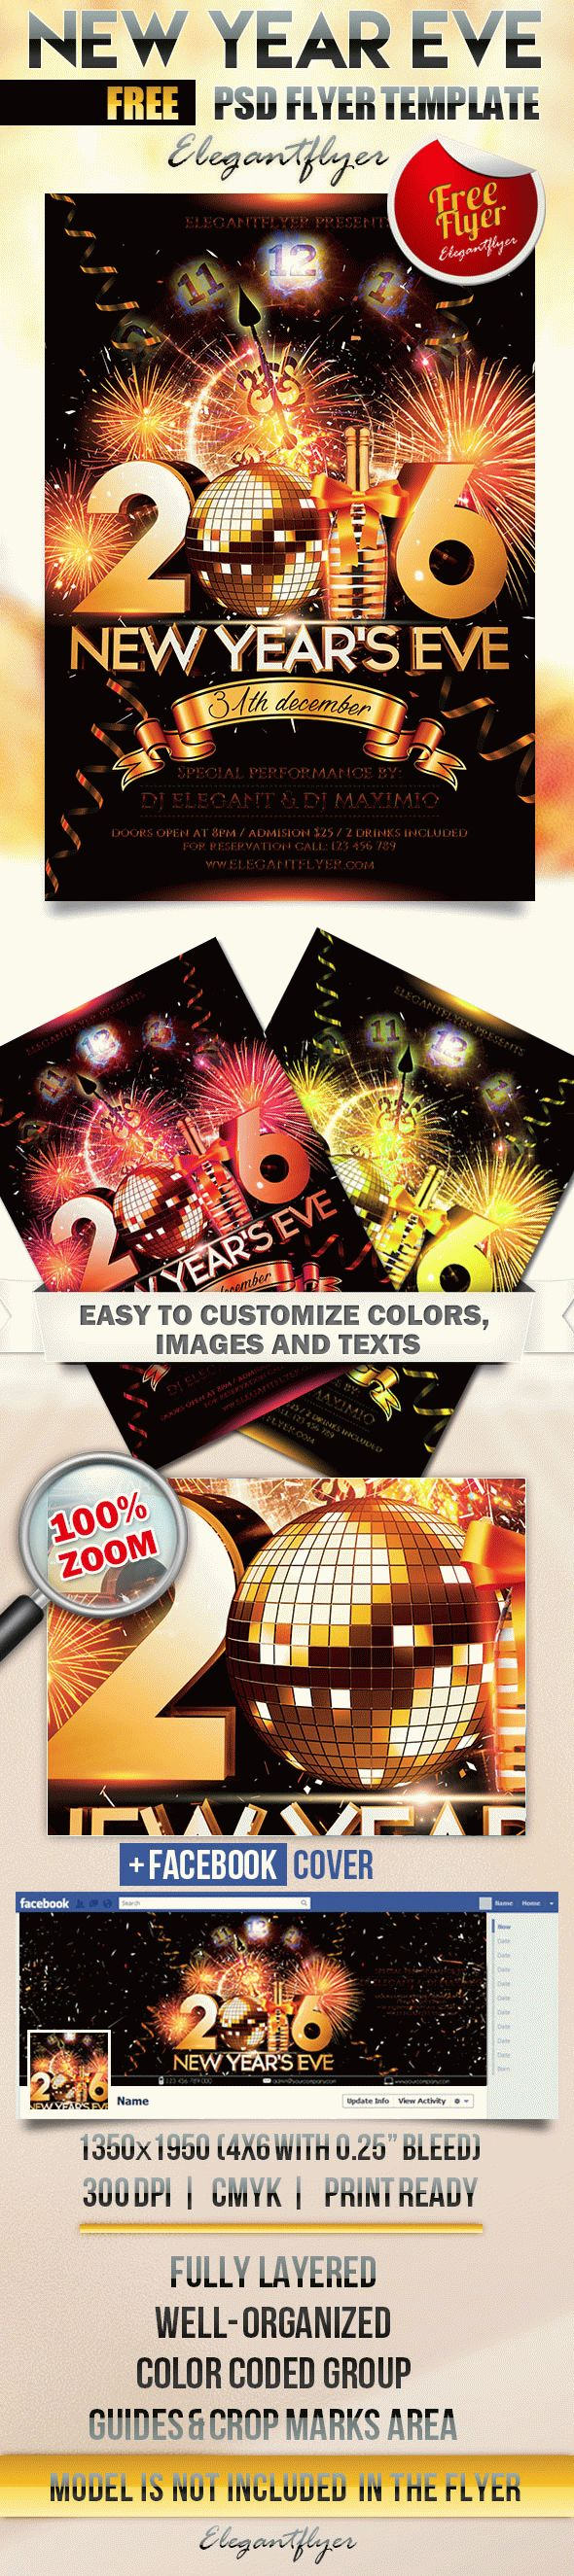 new year eve free flyer psd template